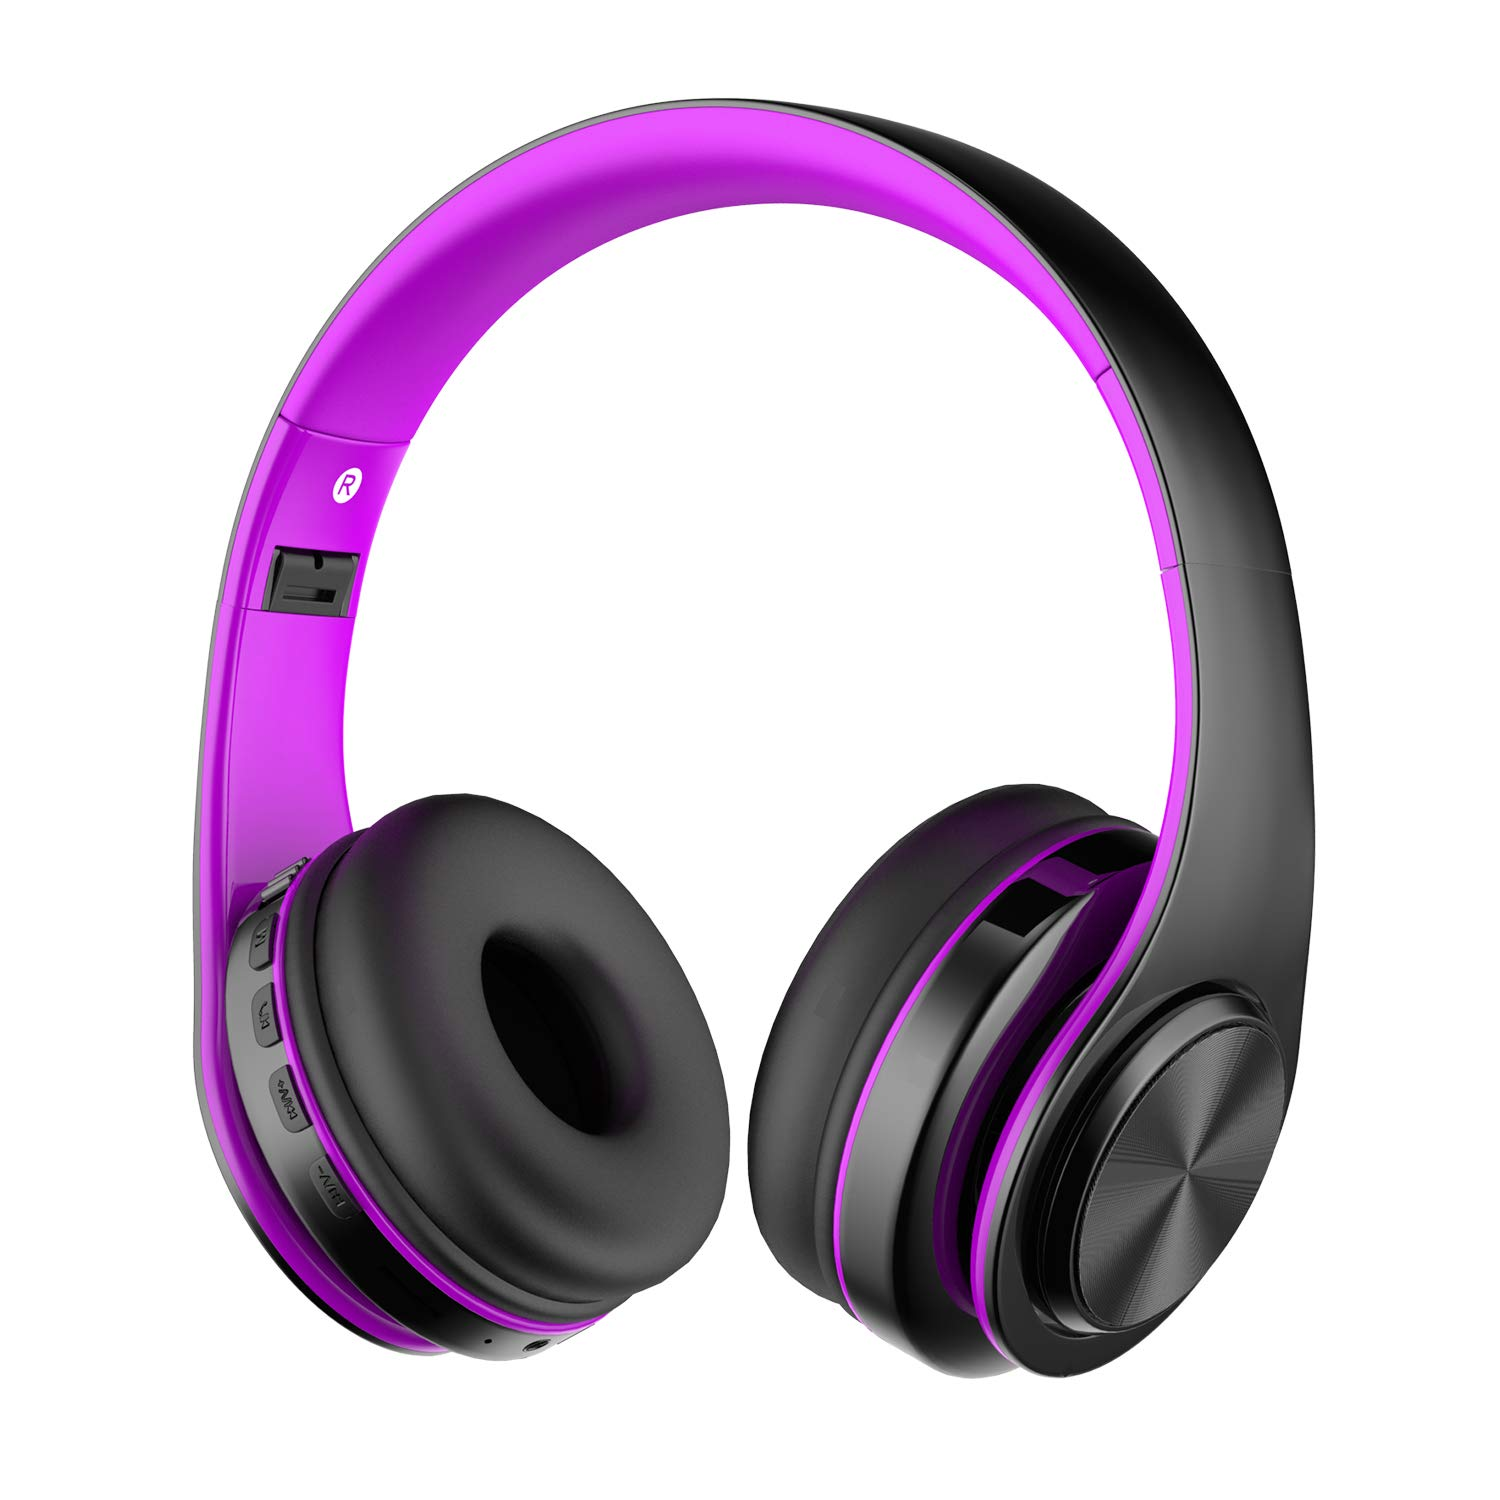 Alitoo Auriculares Inalámbricos Bluetooth Estéreo Plegable Auriculares de Diadema con micrófono Cancelación de Ruido sobre Oreja Cascos para Smartphone,PC,TV,Tableta,Android,MP3 y MP4 (Black&Purple): Amazon.es: Electrónica